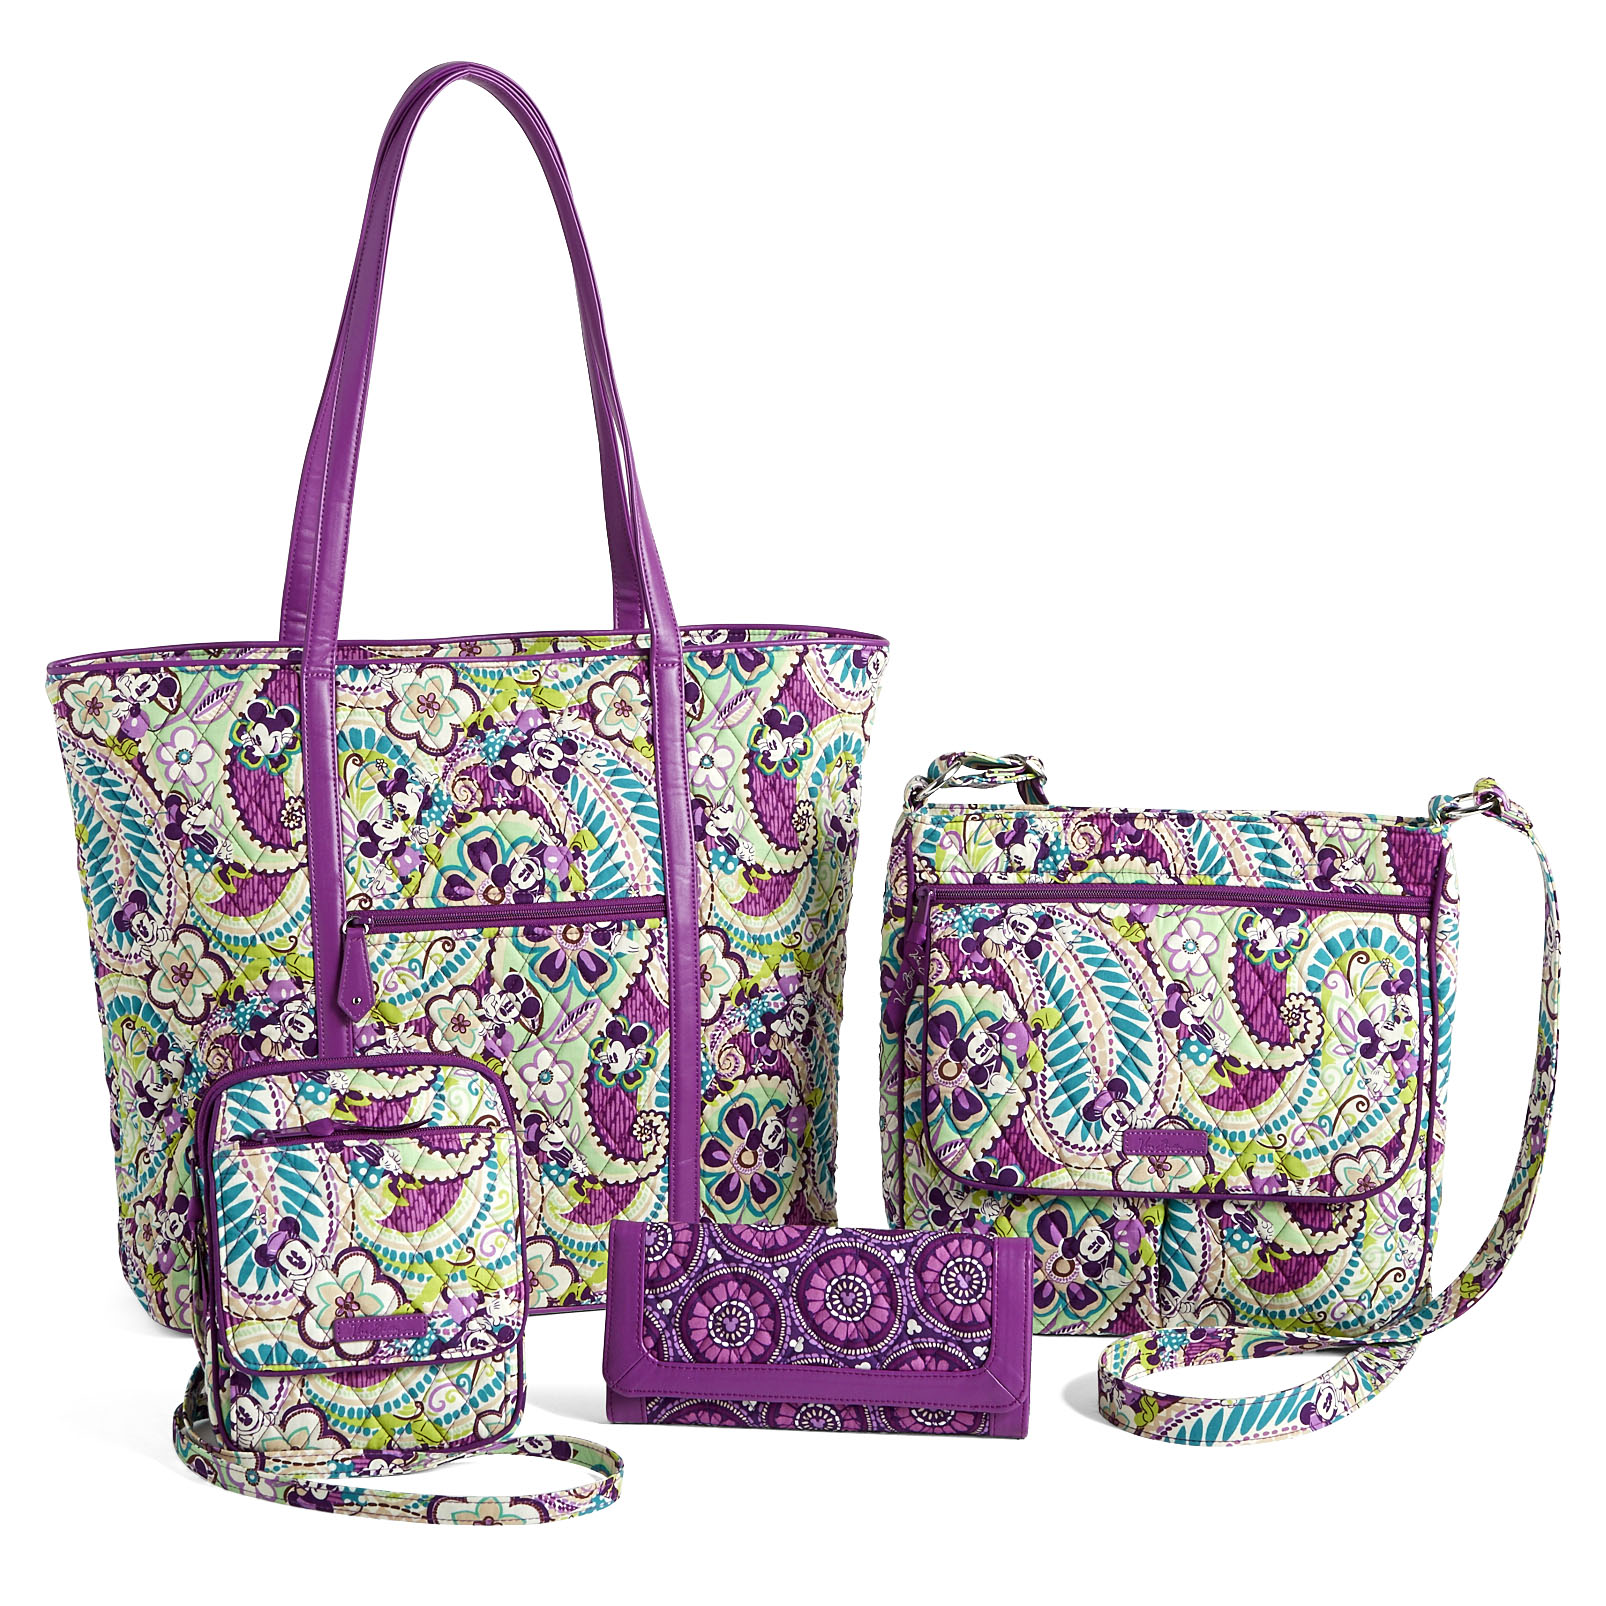 9a6d9fe348 New Disney Plums Up Vera Bradley Collection Online at The Disney ...